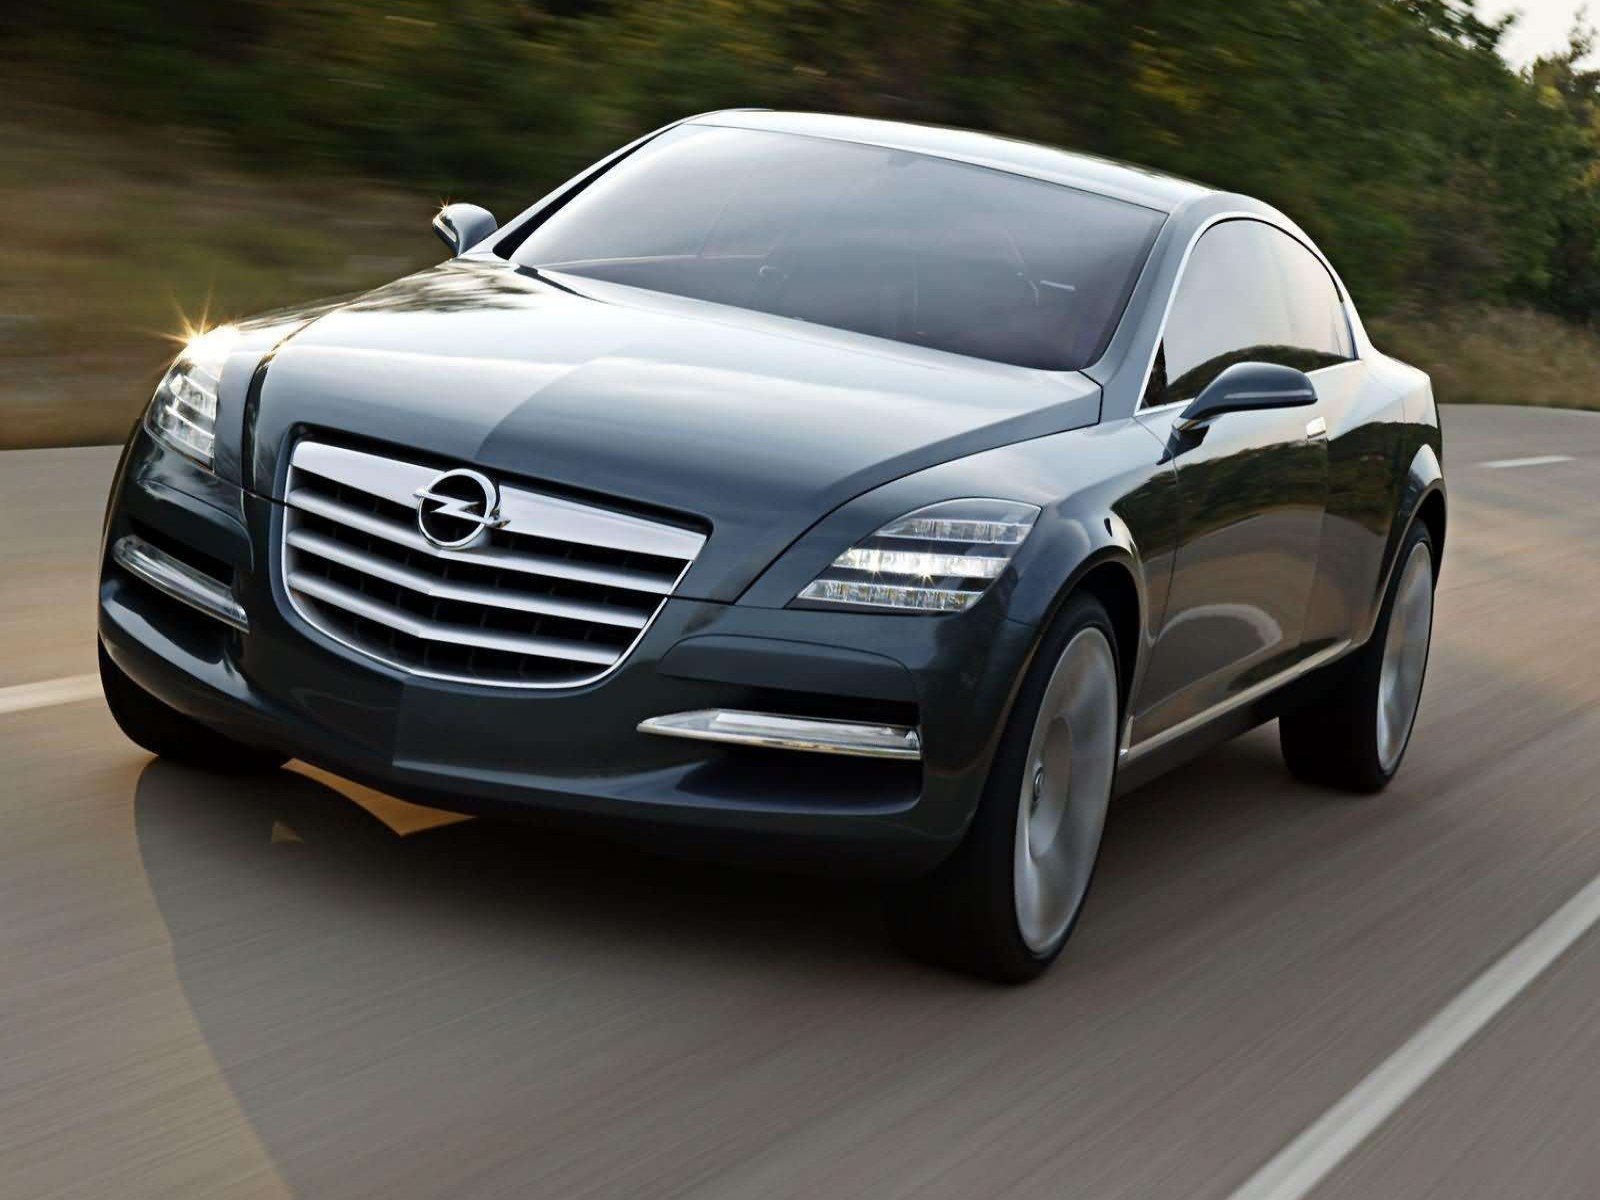 Car And Car Zone Opel Insignia Concept 2003 New Cars Car